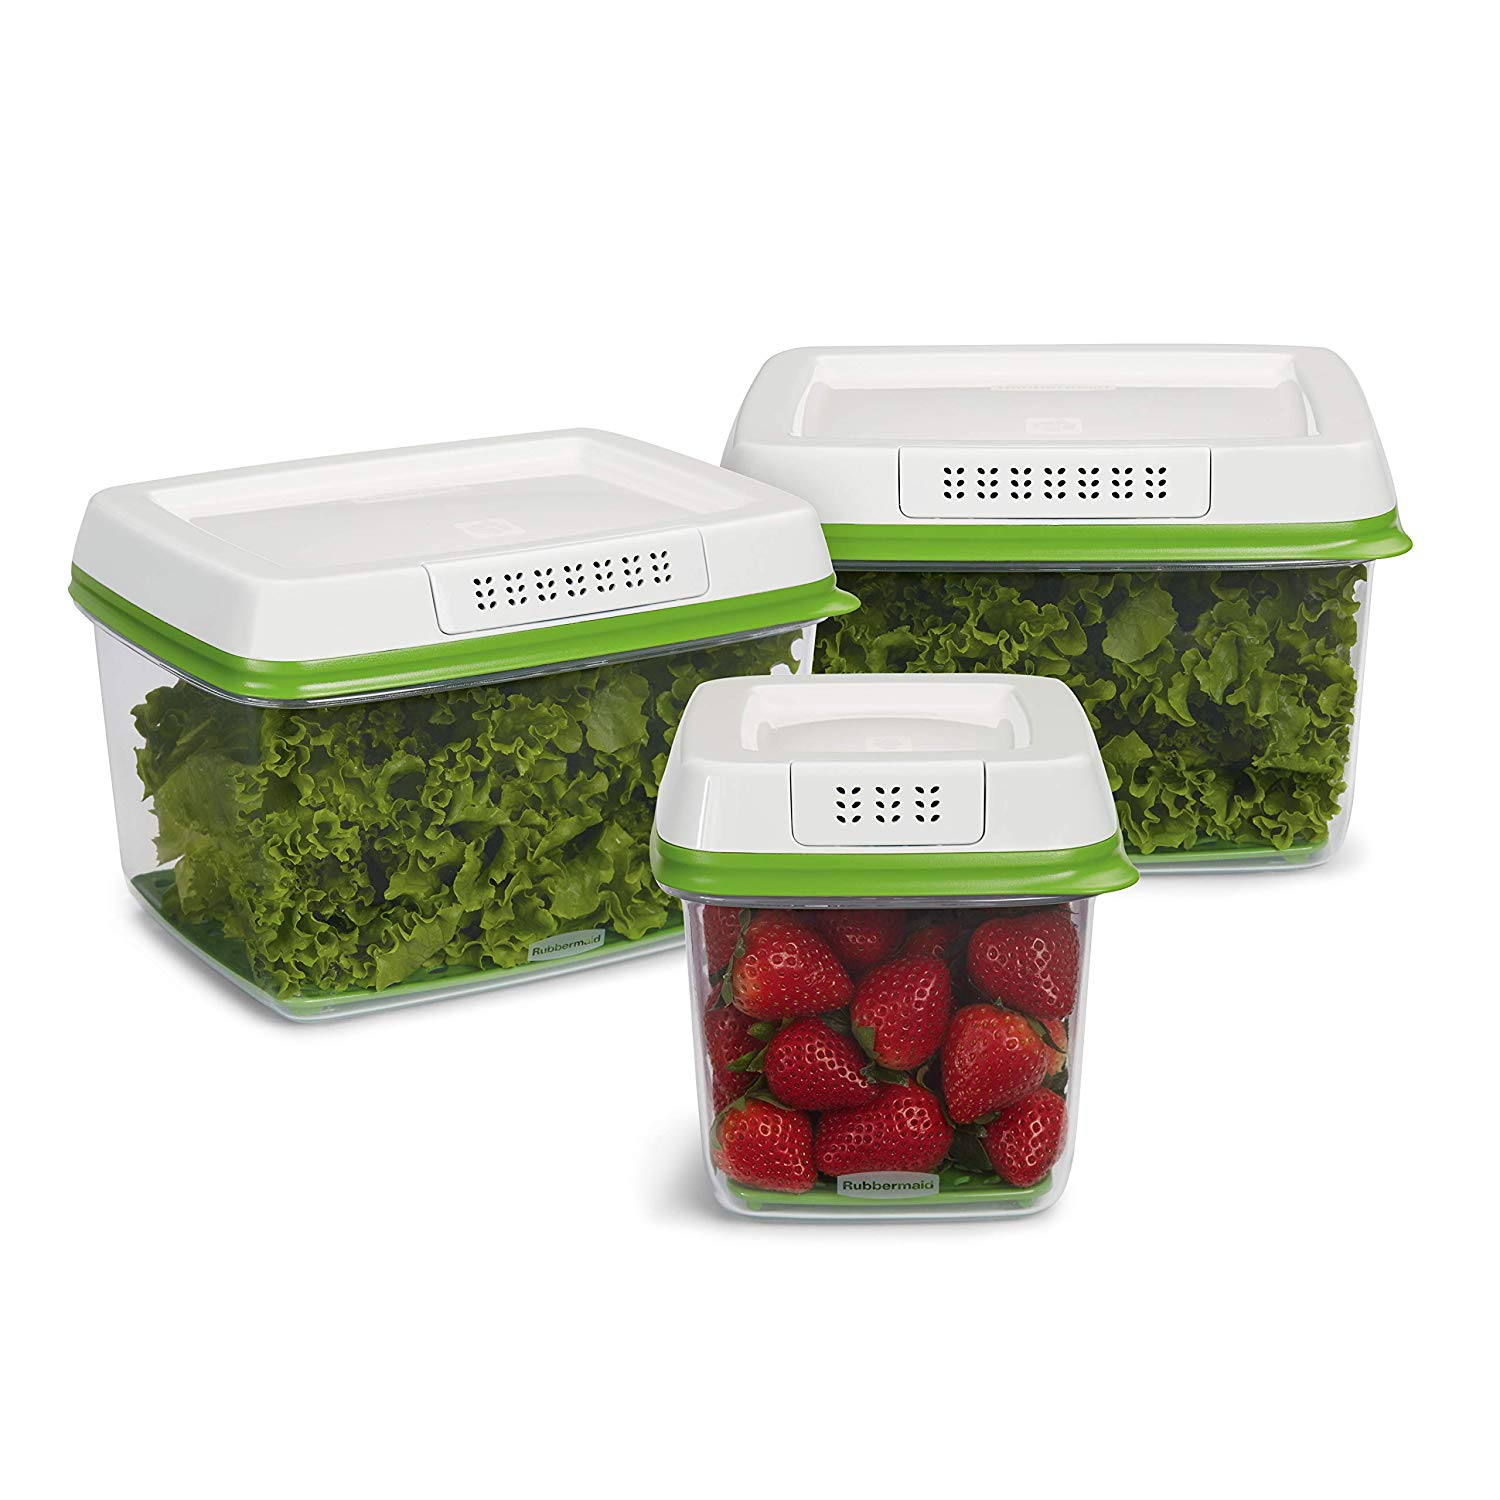 Rubbermaid FreshWorks Produce Saver Food Storage Containers  ($27 for a three piece set) — these storage bins help keep my groceries good for weeks. WEEKS. Kale, cucumbers, tomatoes, you name it… pop the produce in one of these tubs and whatever's inside will stay fresh way longer.